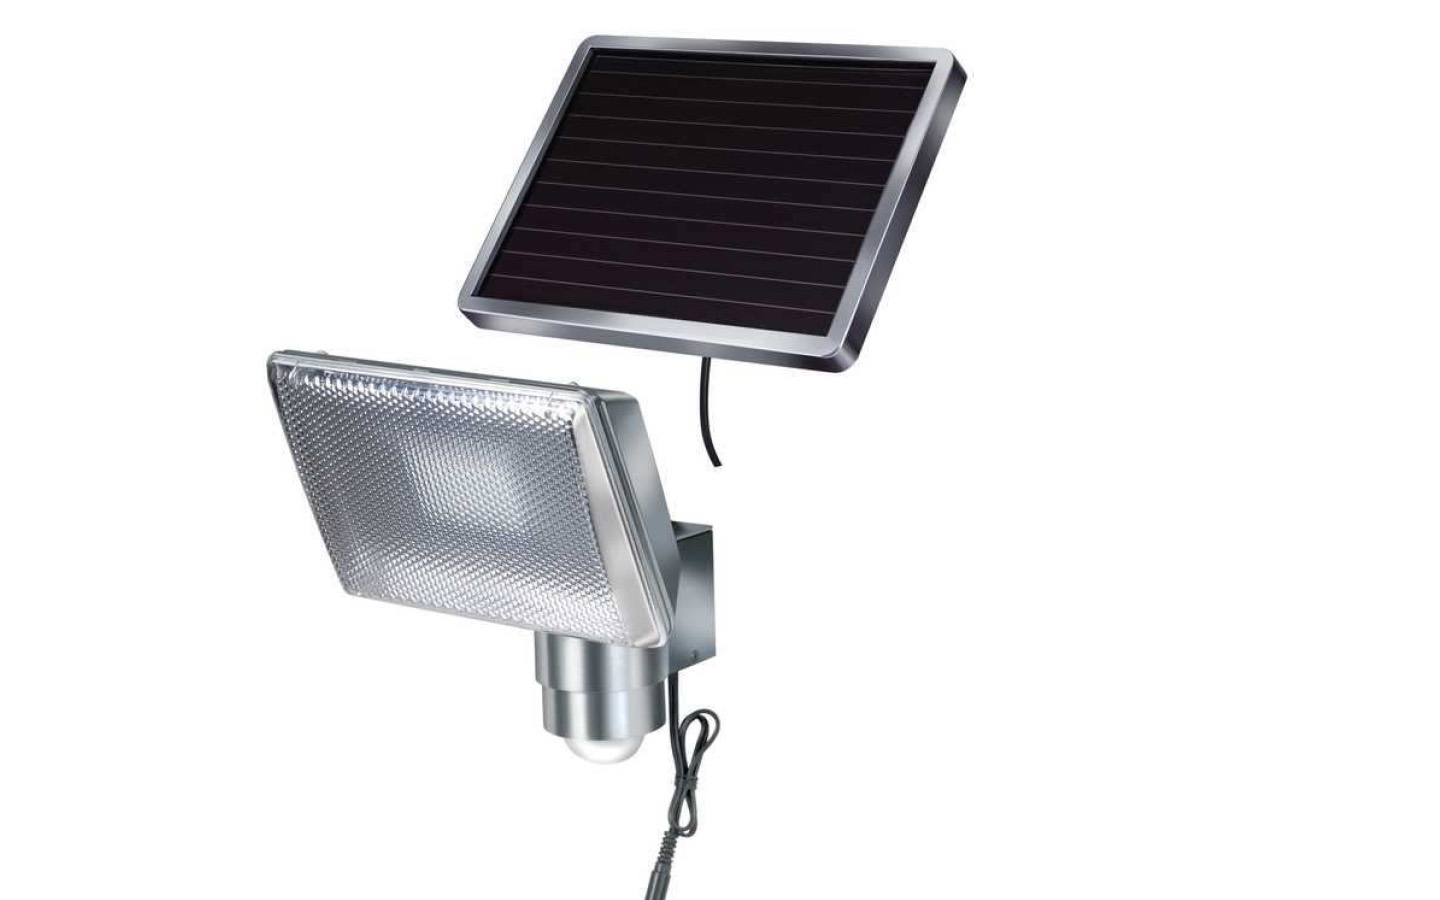 PROJECTEUR SOLAR LED 80